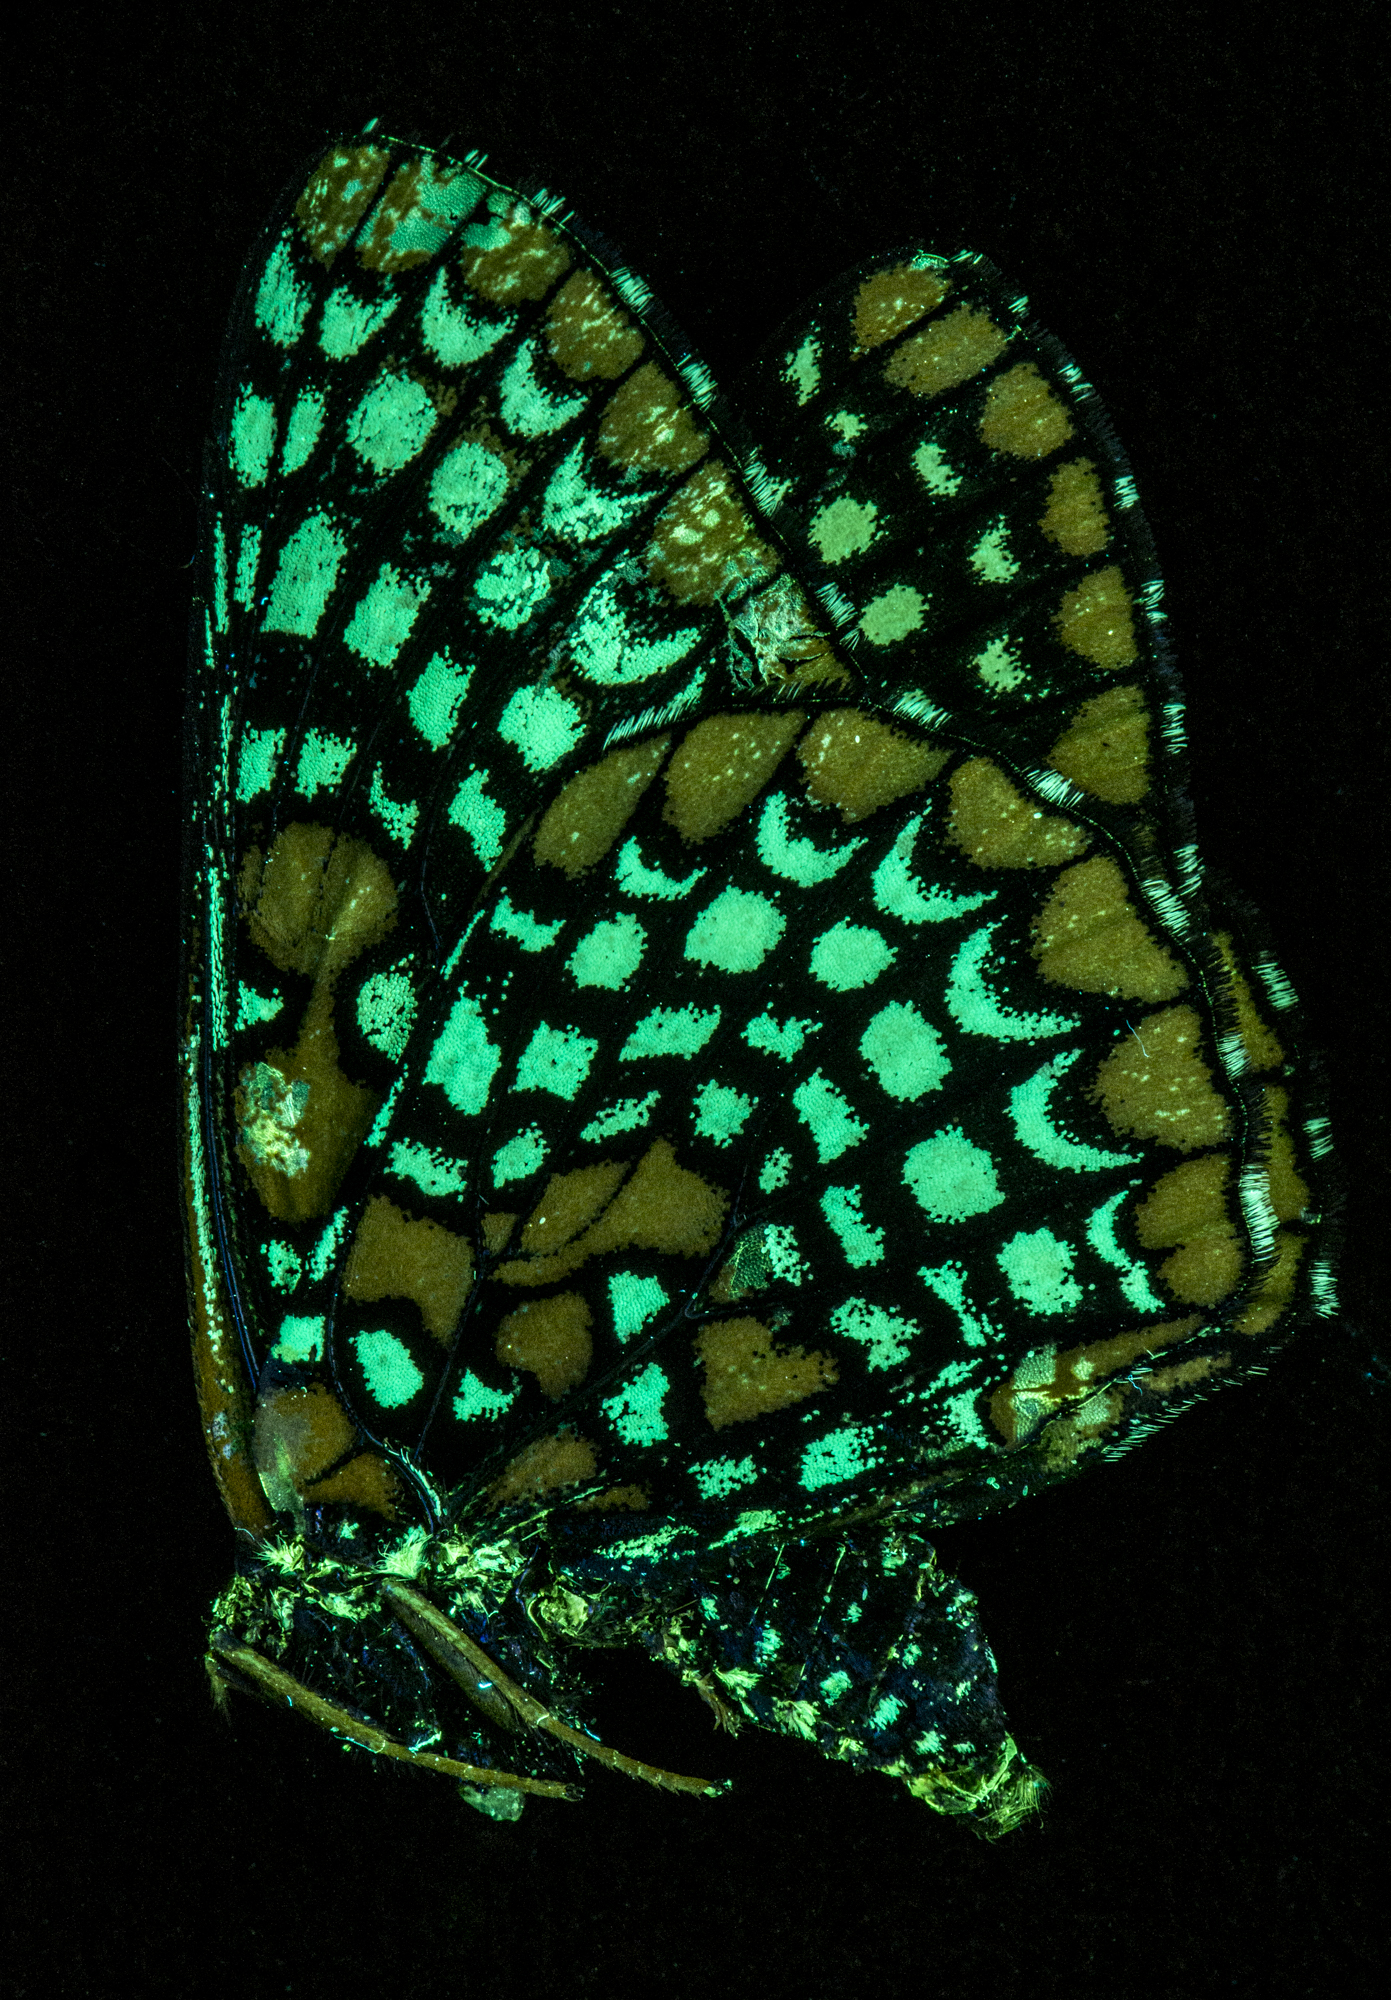 Fluorescence Emission from Butterfly